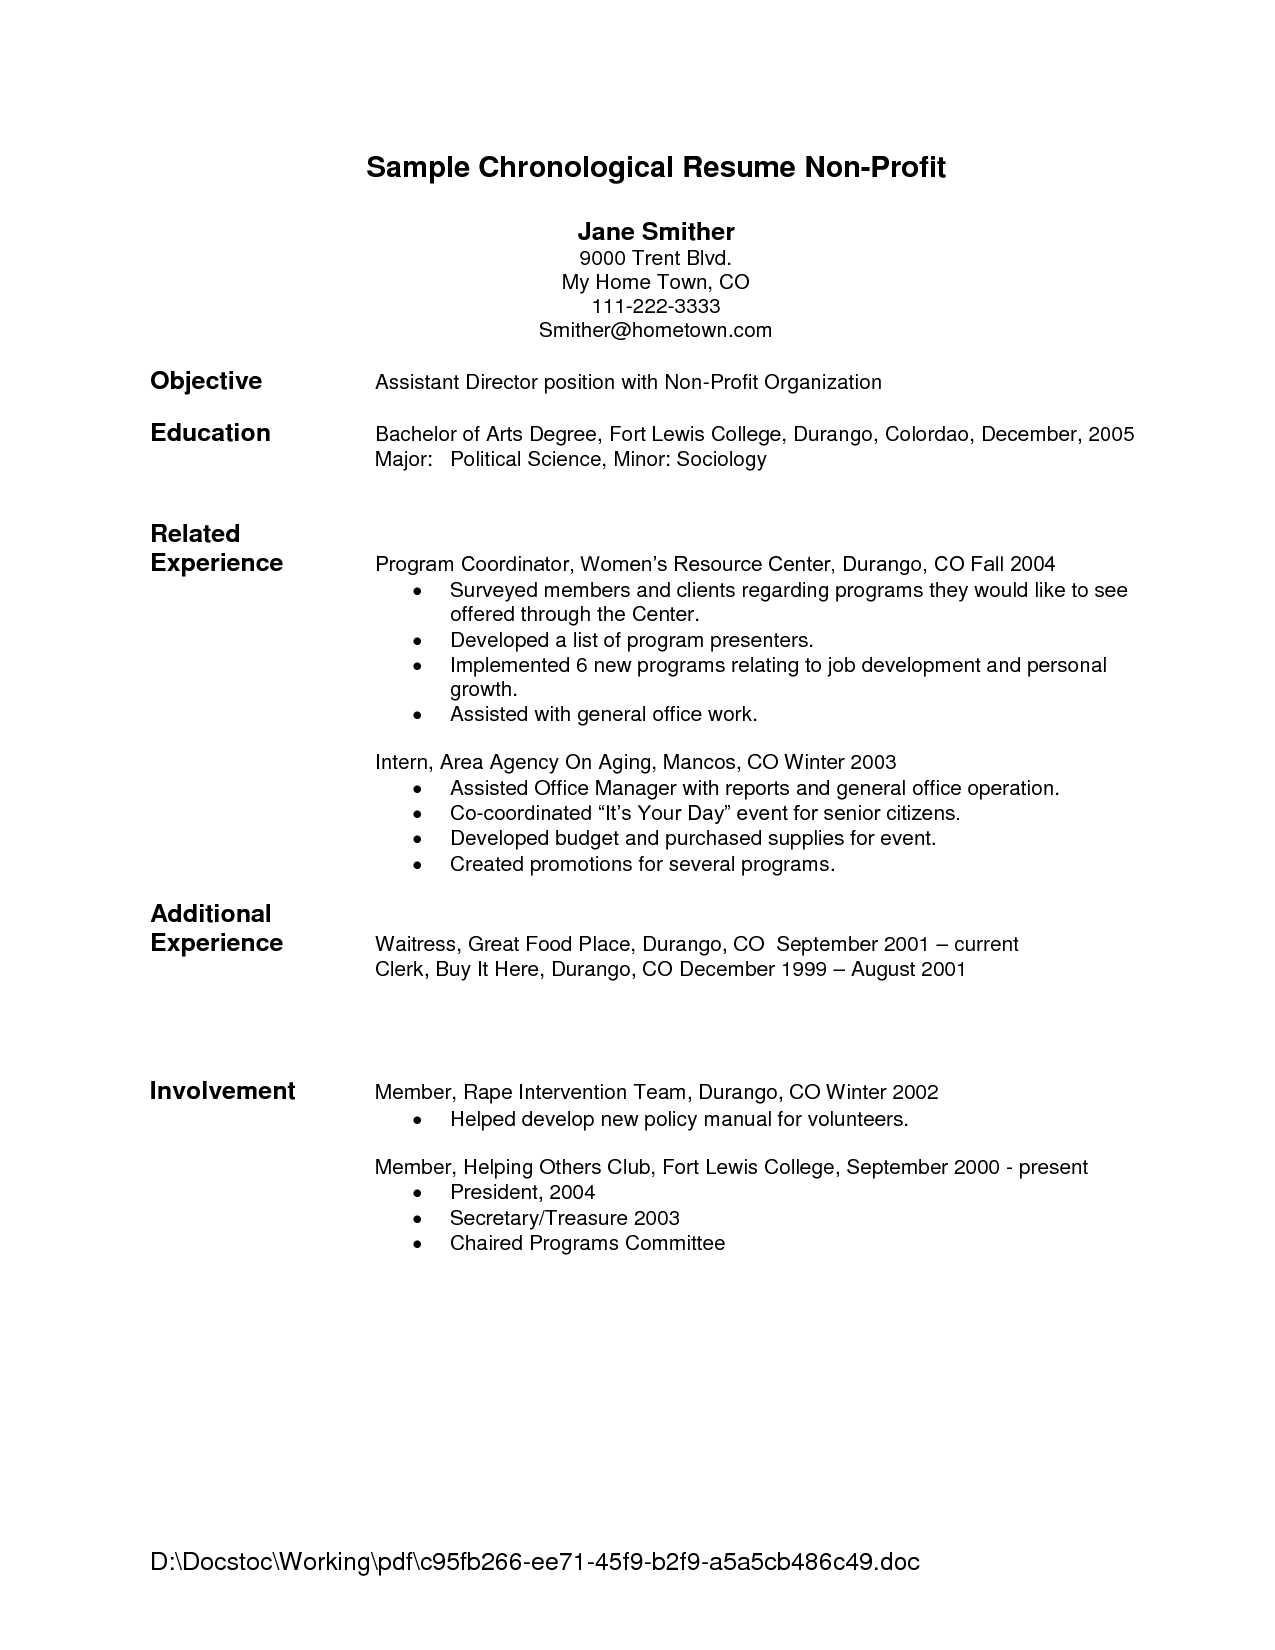 Genial Chronological Resume Template